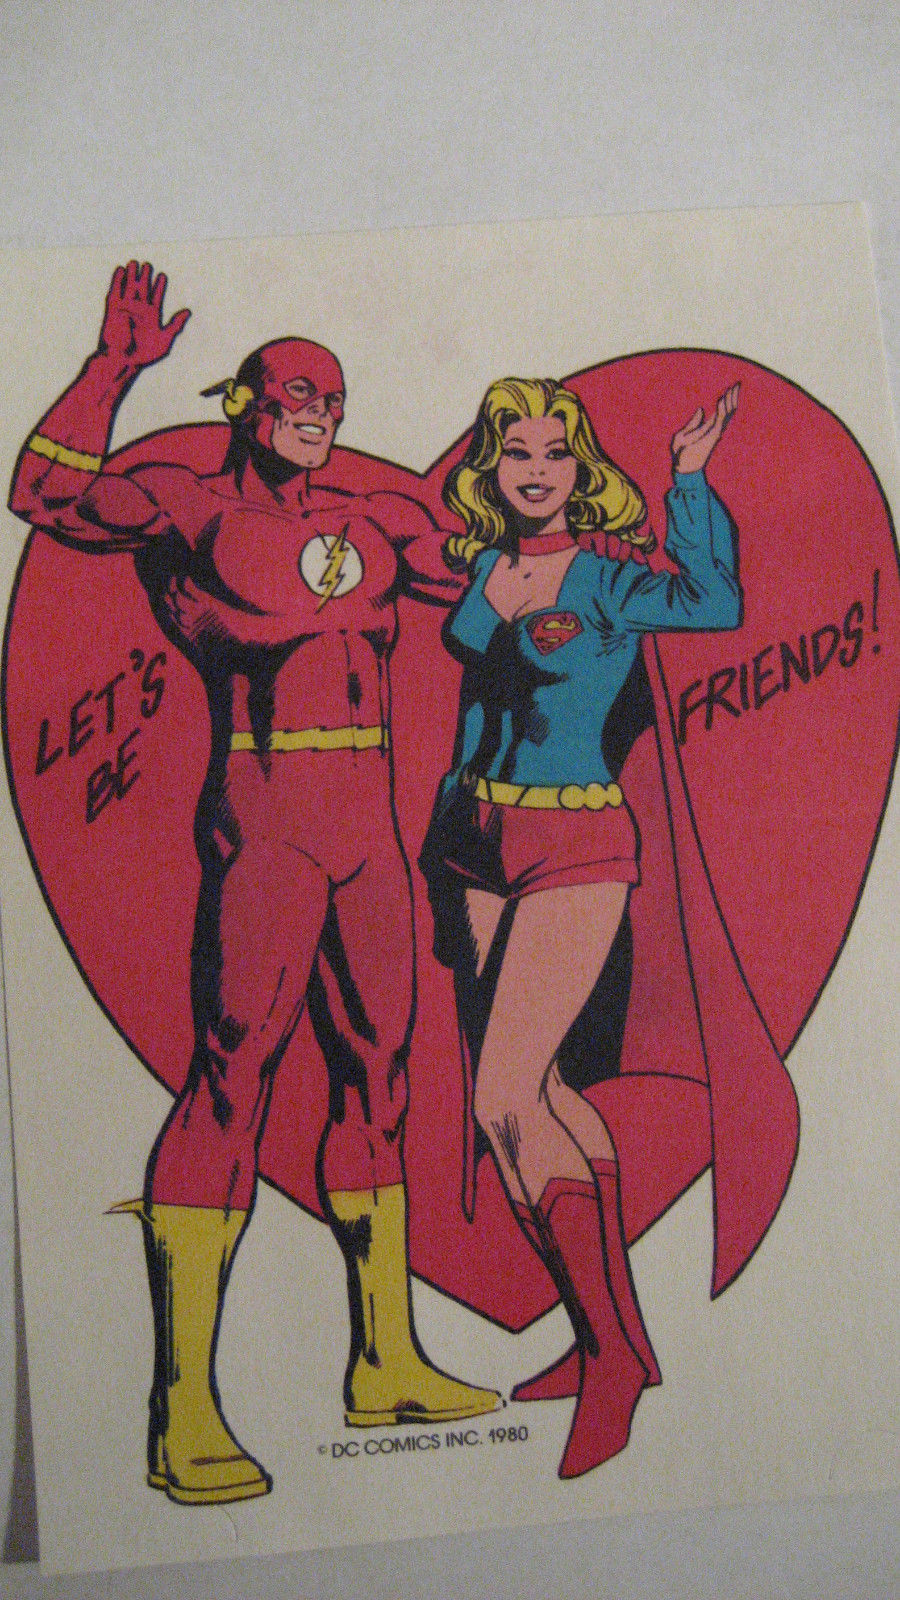 Flash and Supergirl look superenthusiastic in this throwback valentine ($7) from 1980. But . . . what if you want to be more than just friends?